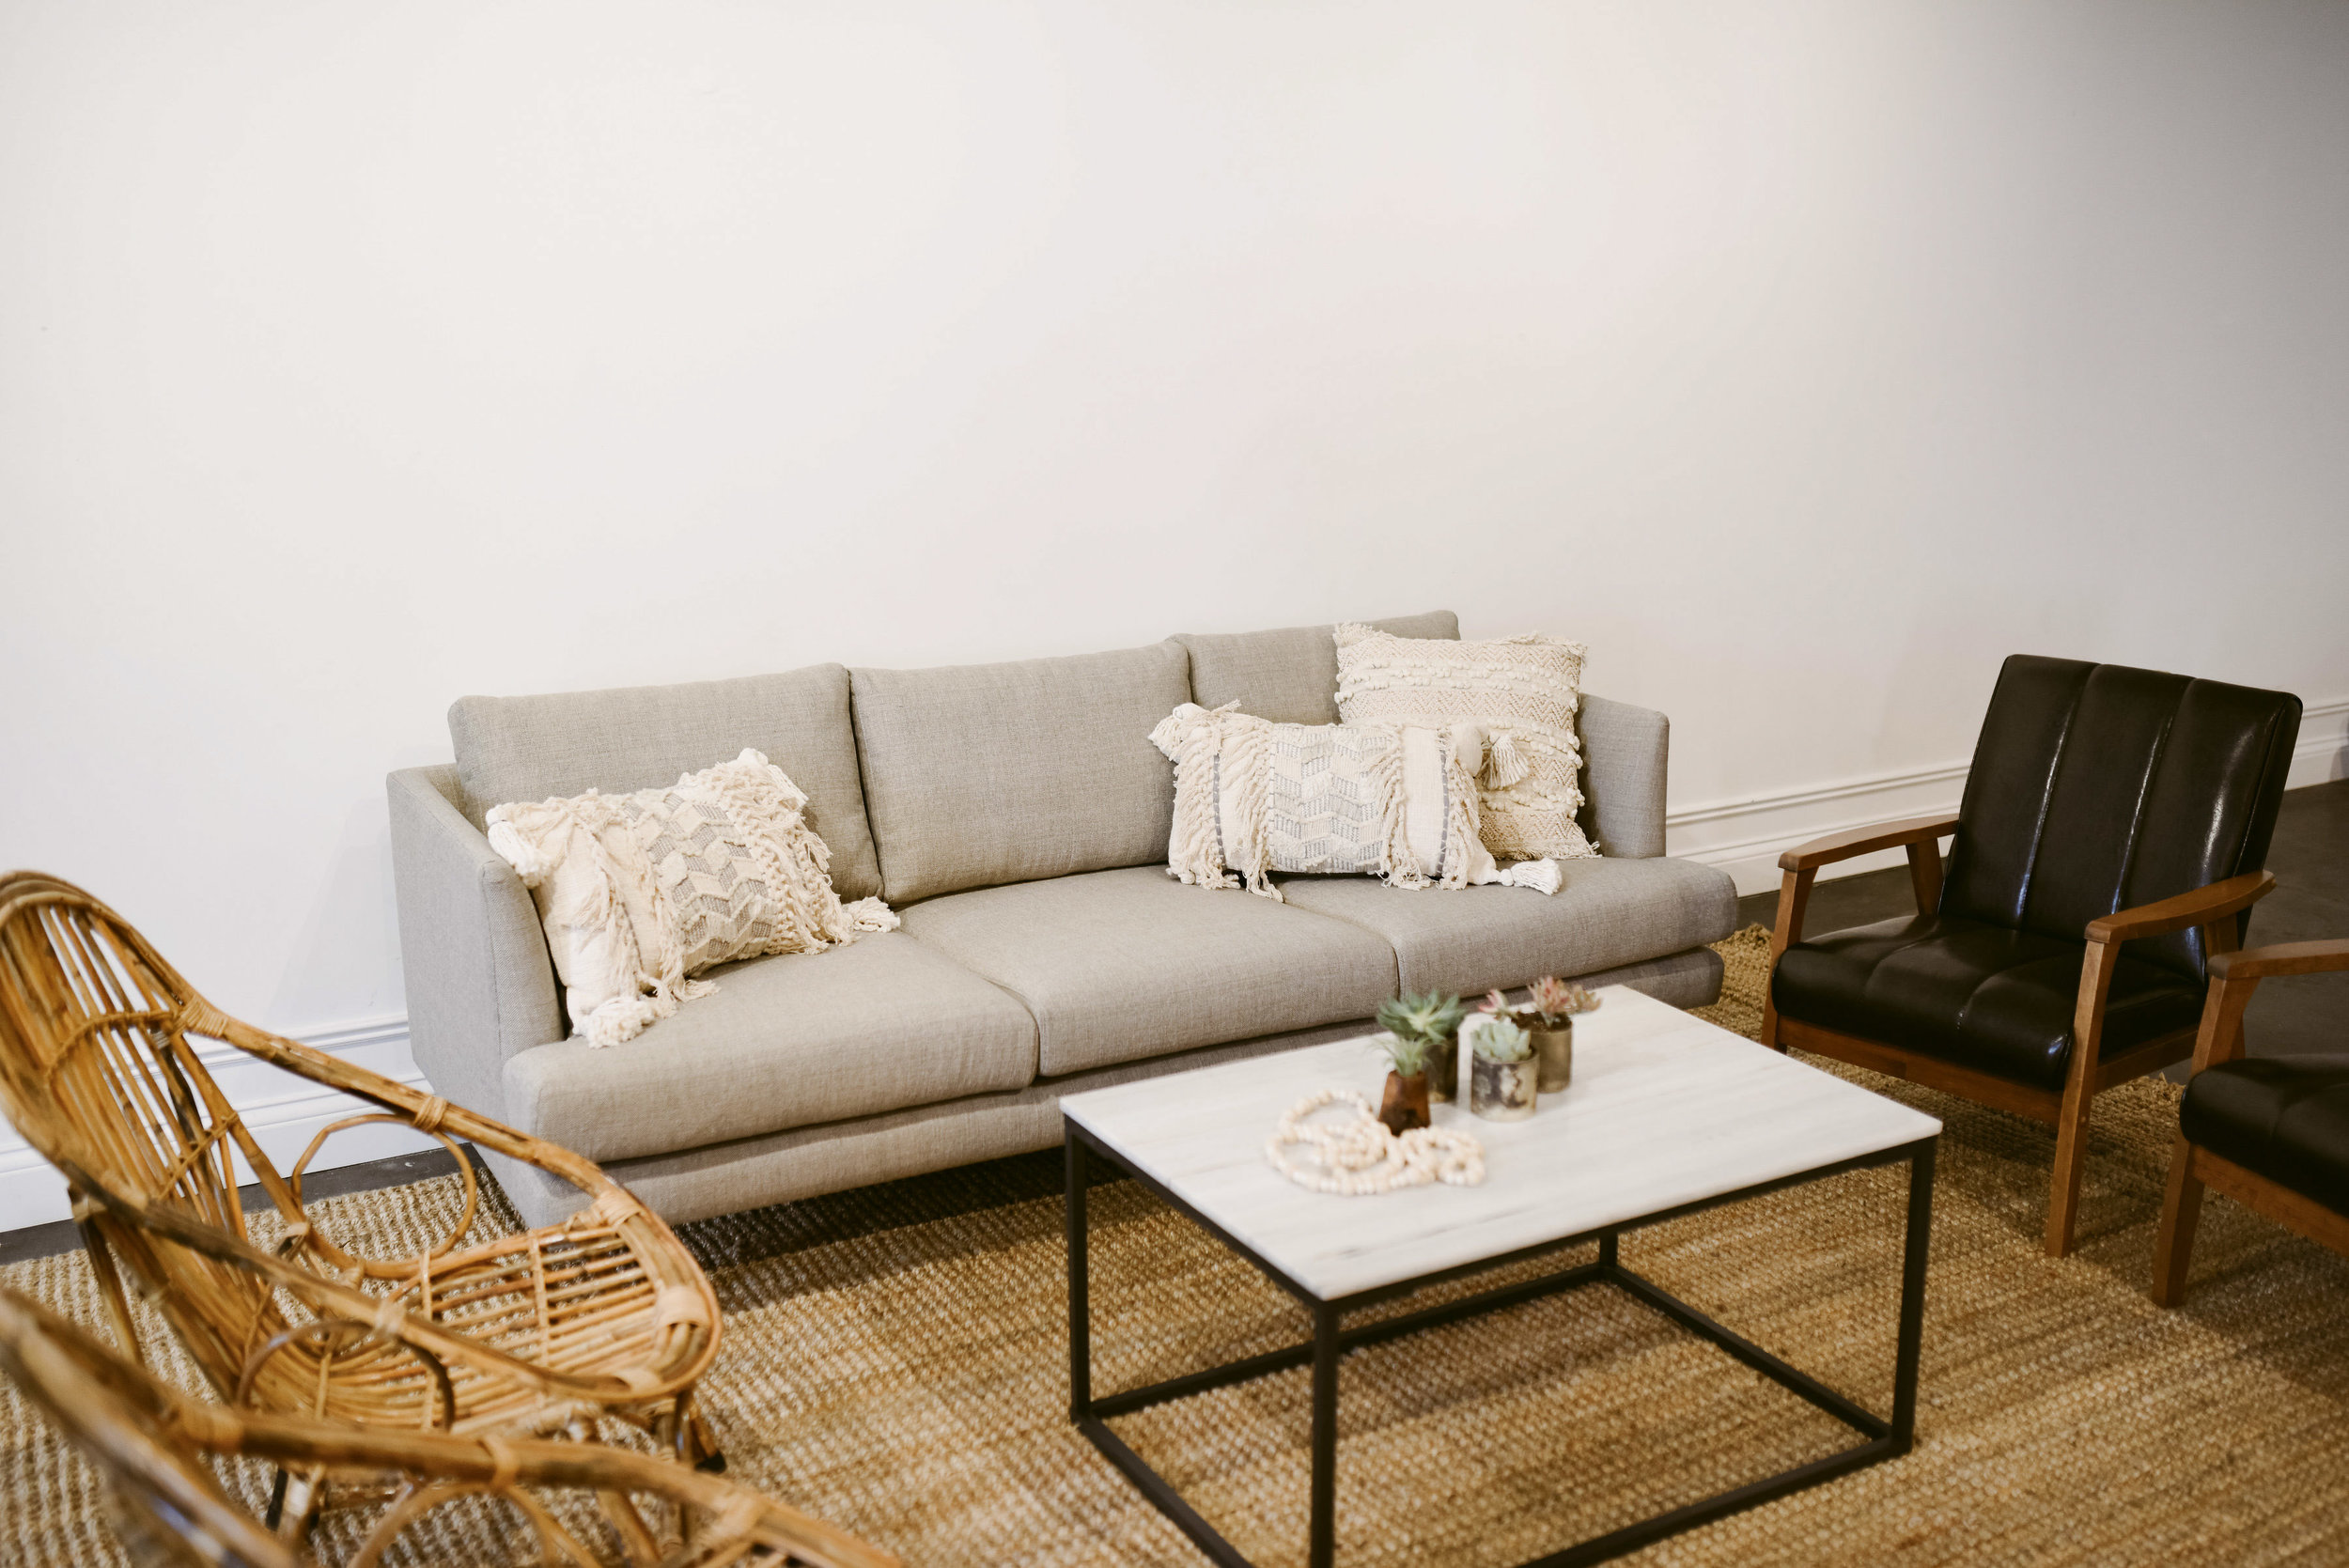 Home Page Lounge Picture.jpg